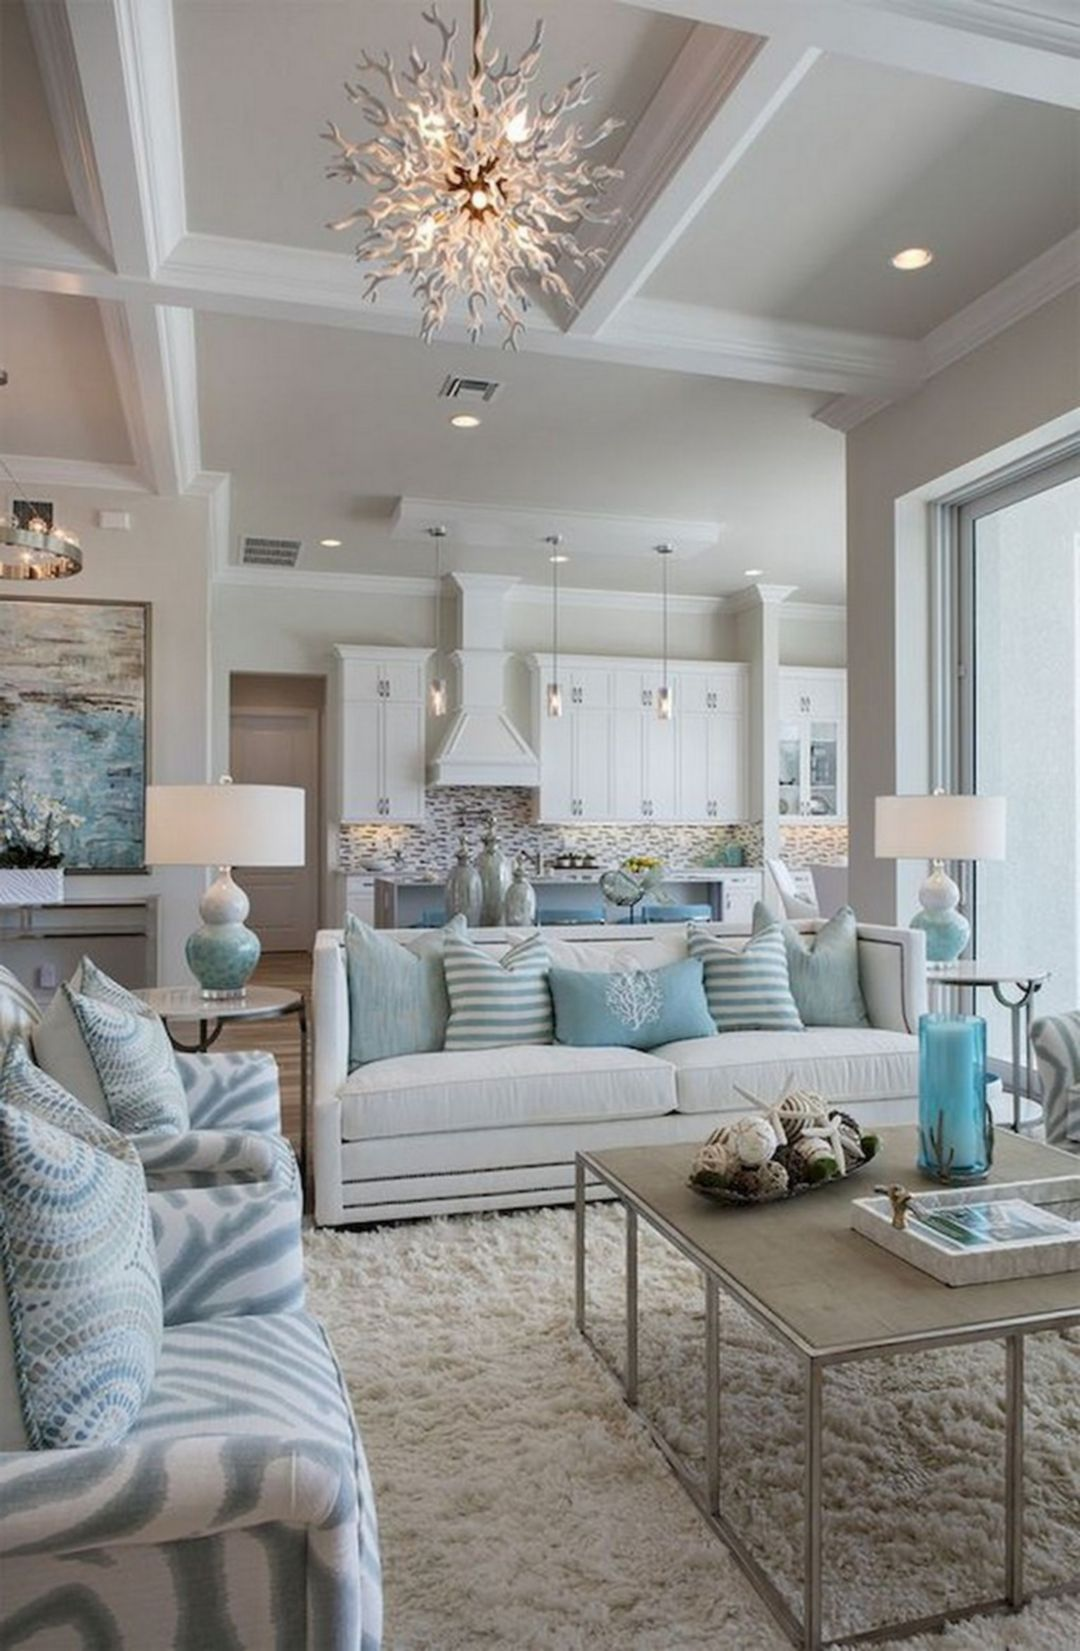 25 Unbelievable Coastal Living Room Design Ideas For Your Relaxing Home images